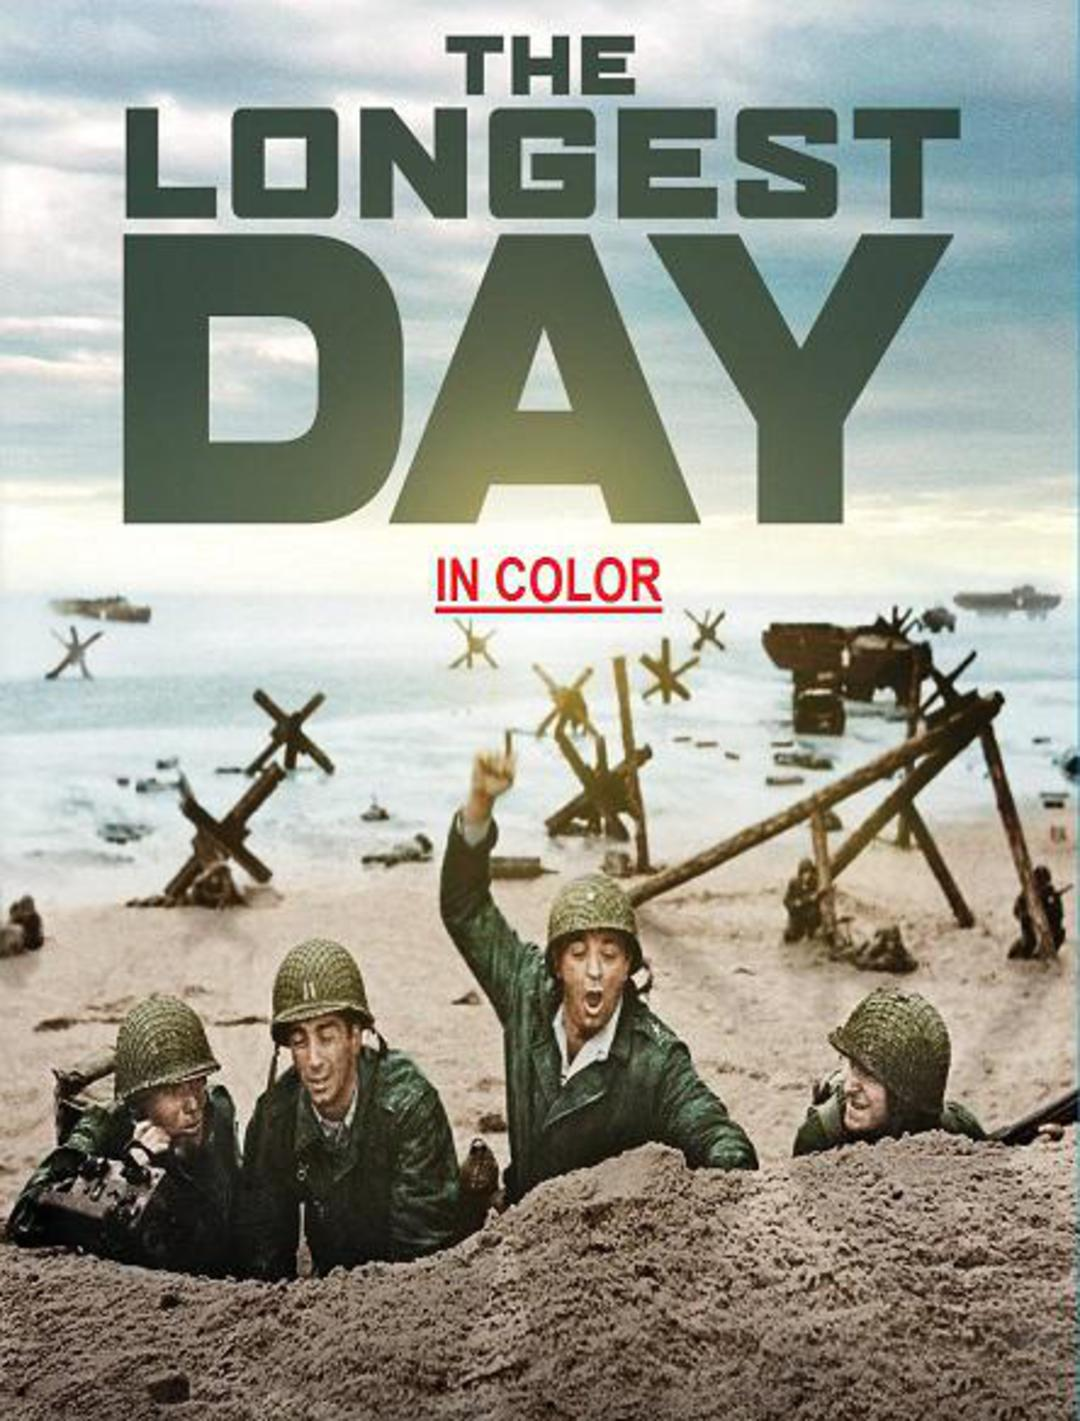 THE LONGEST DAY (in Color)